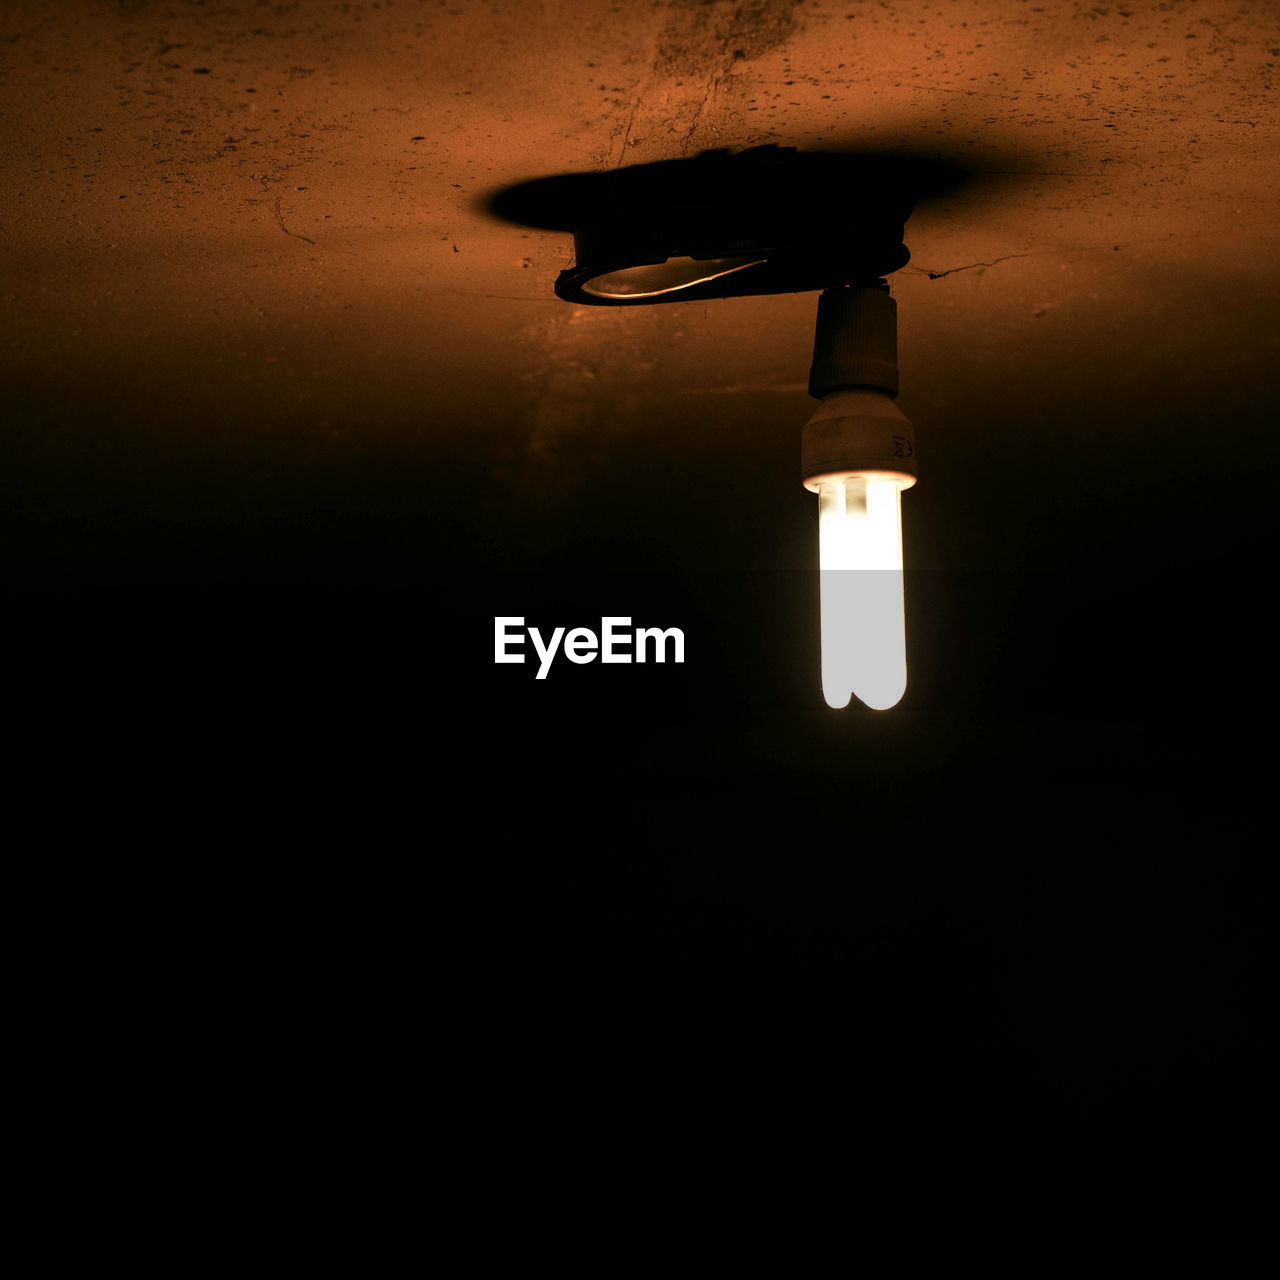 electricity, lighting equipment, illuminated, low angle view, light bulb, indoors, light, no people, electric lamp, dark, copy space, electric light, glowing, night, domestic room, technology, ceiling, wall - building feature, darkroom, light - natural phenomenon, light fixture